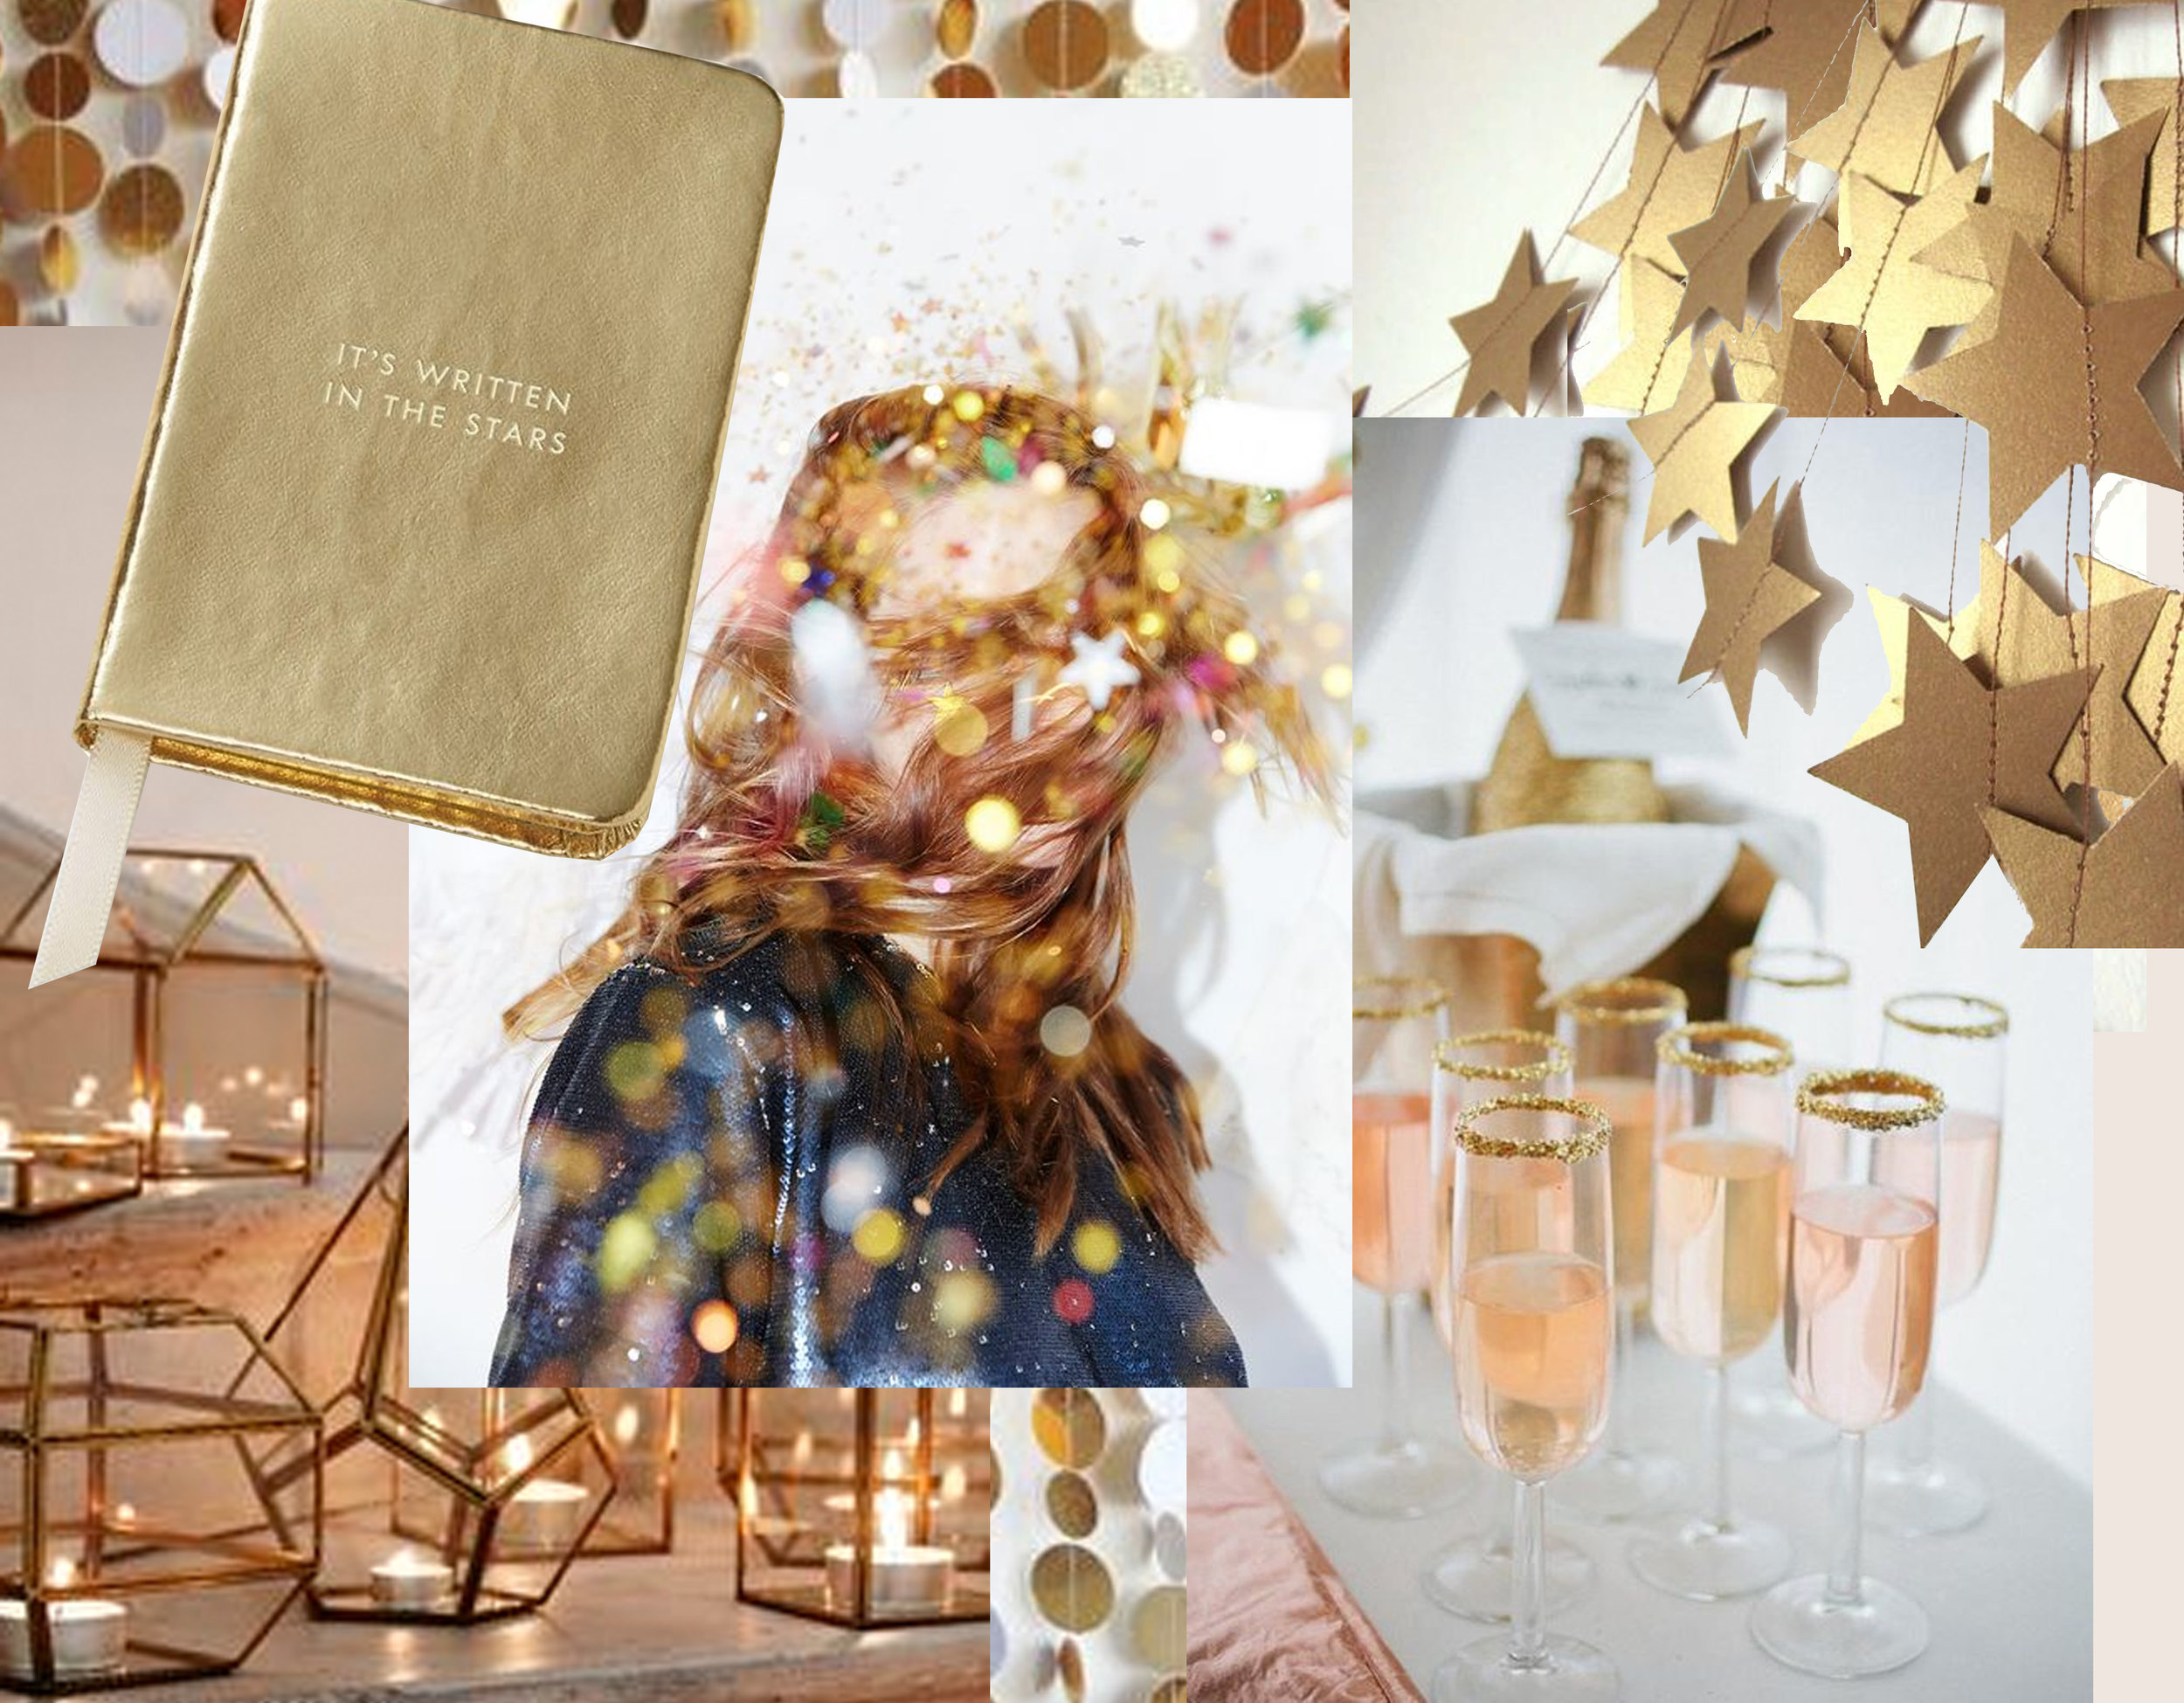 journal  Moments don't collect dust  - candle holders  Oliver Bonas  - woman image via  Urban Outfitters  - drinks via  100 Layers Cake  - star garland via  Trend Hunter